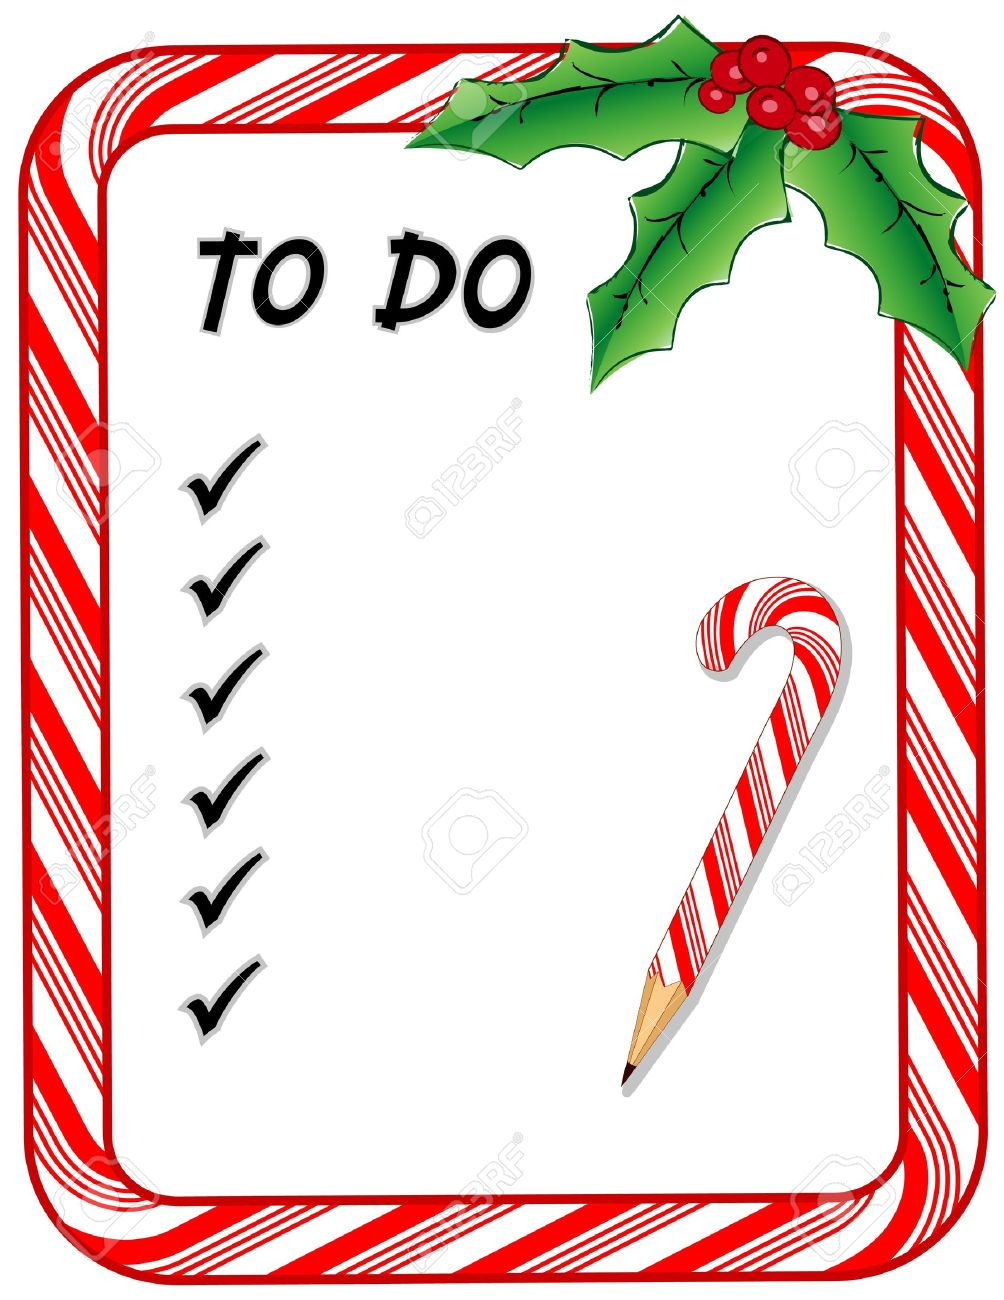 Christmas To Do List With Candy Cane Frame, Check Marks, Pencil ...